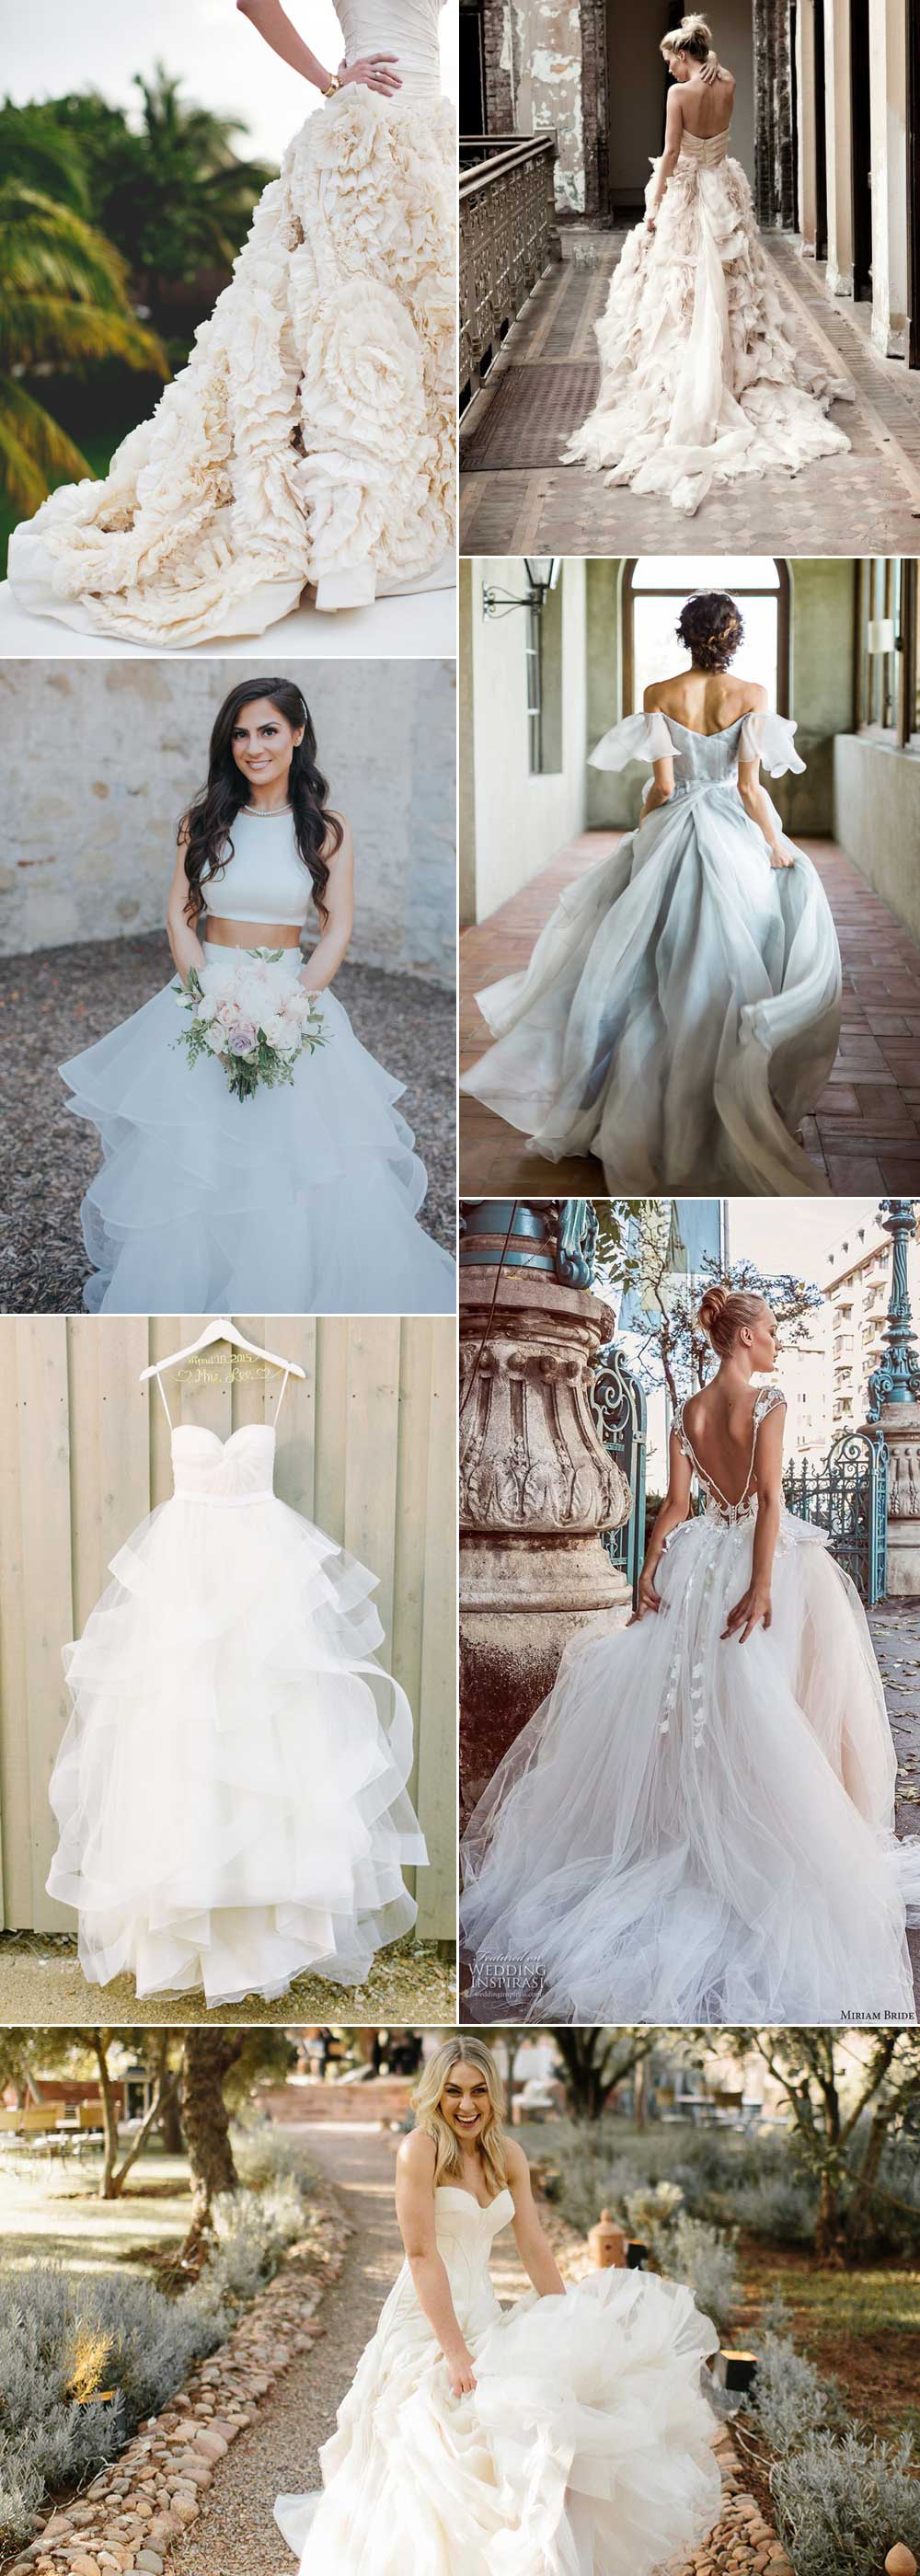 Tulle dresses